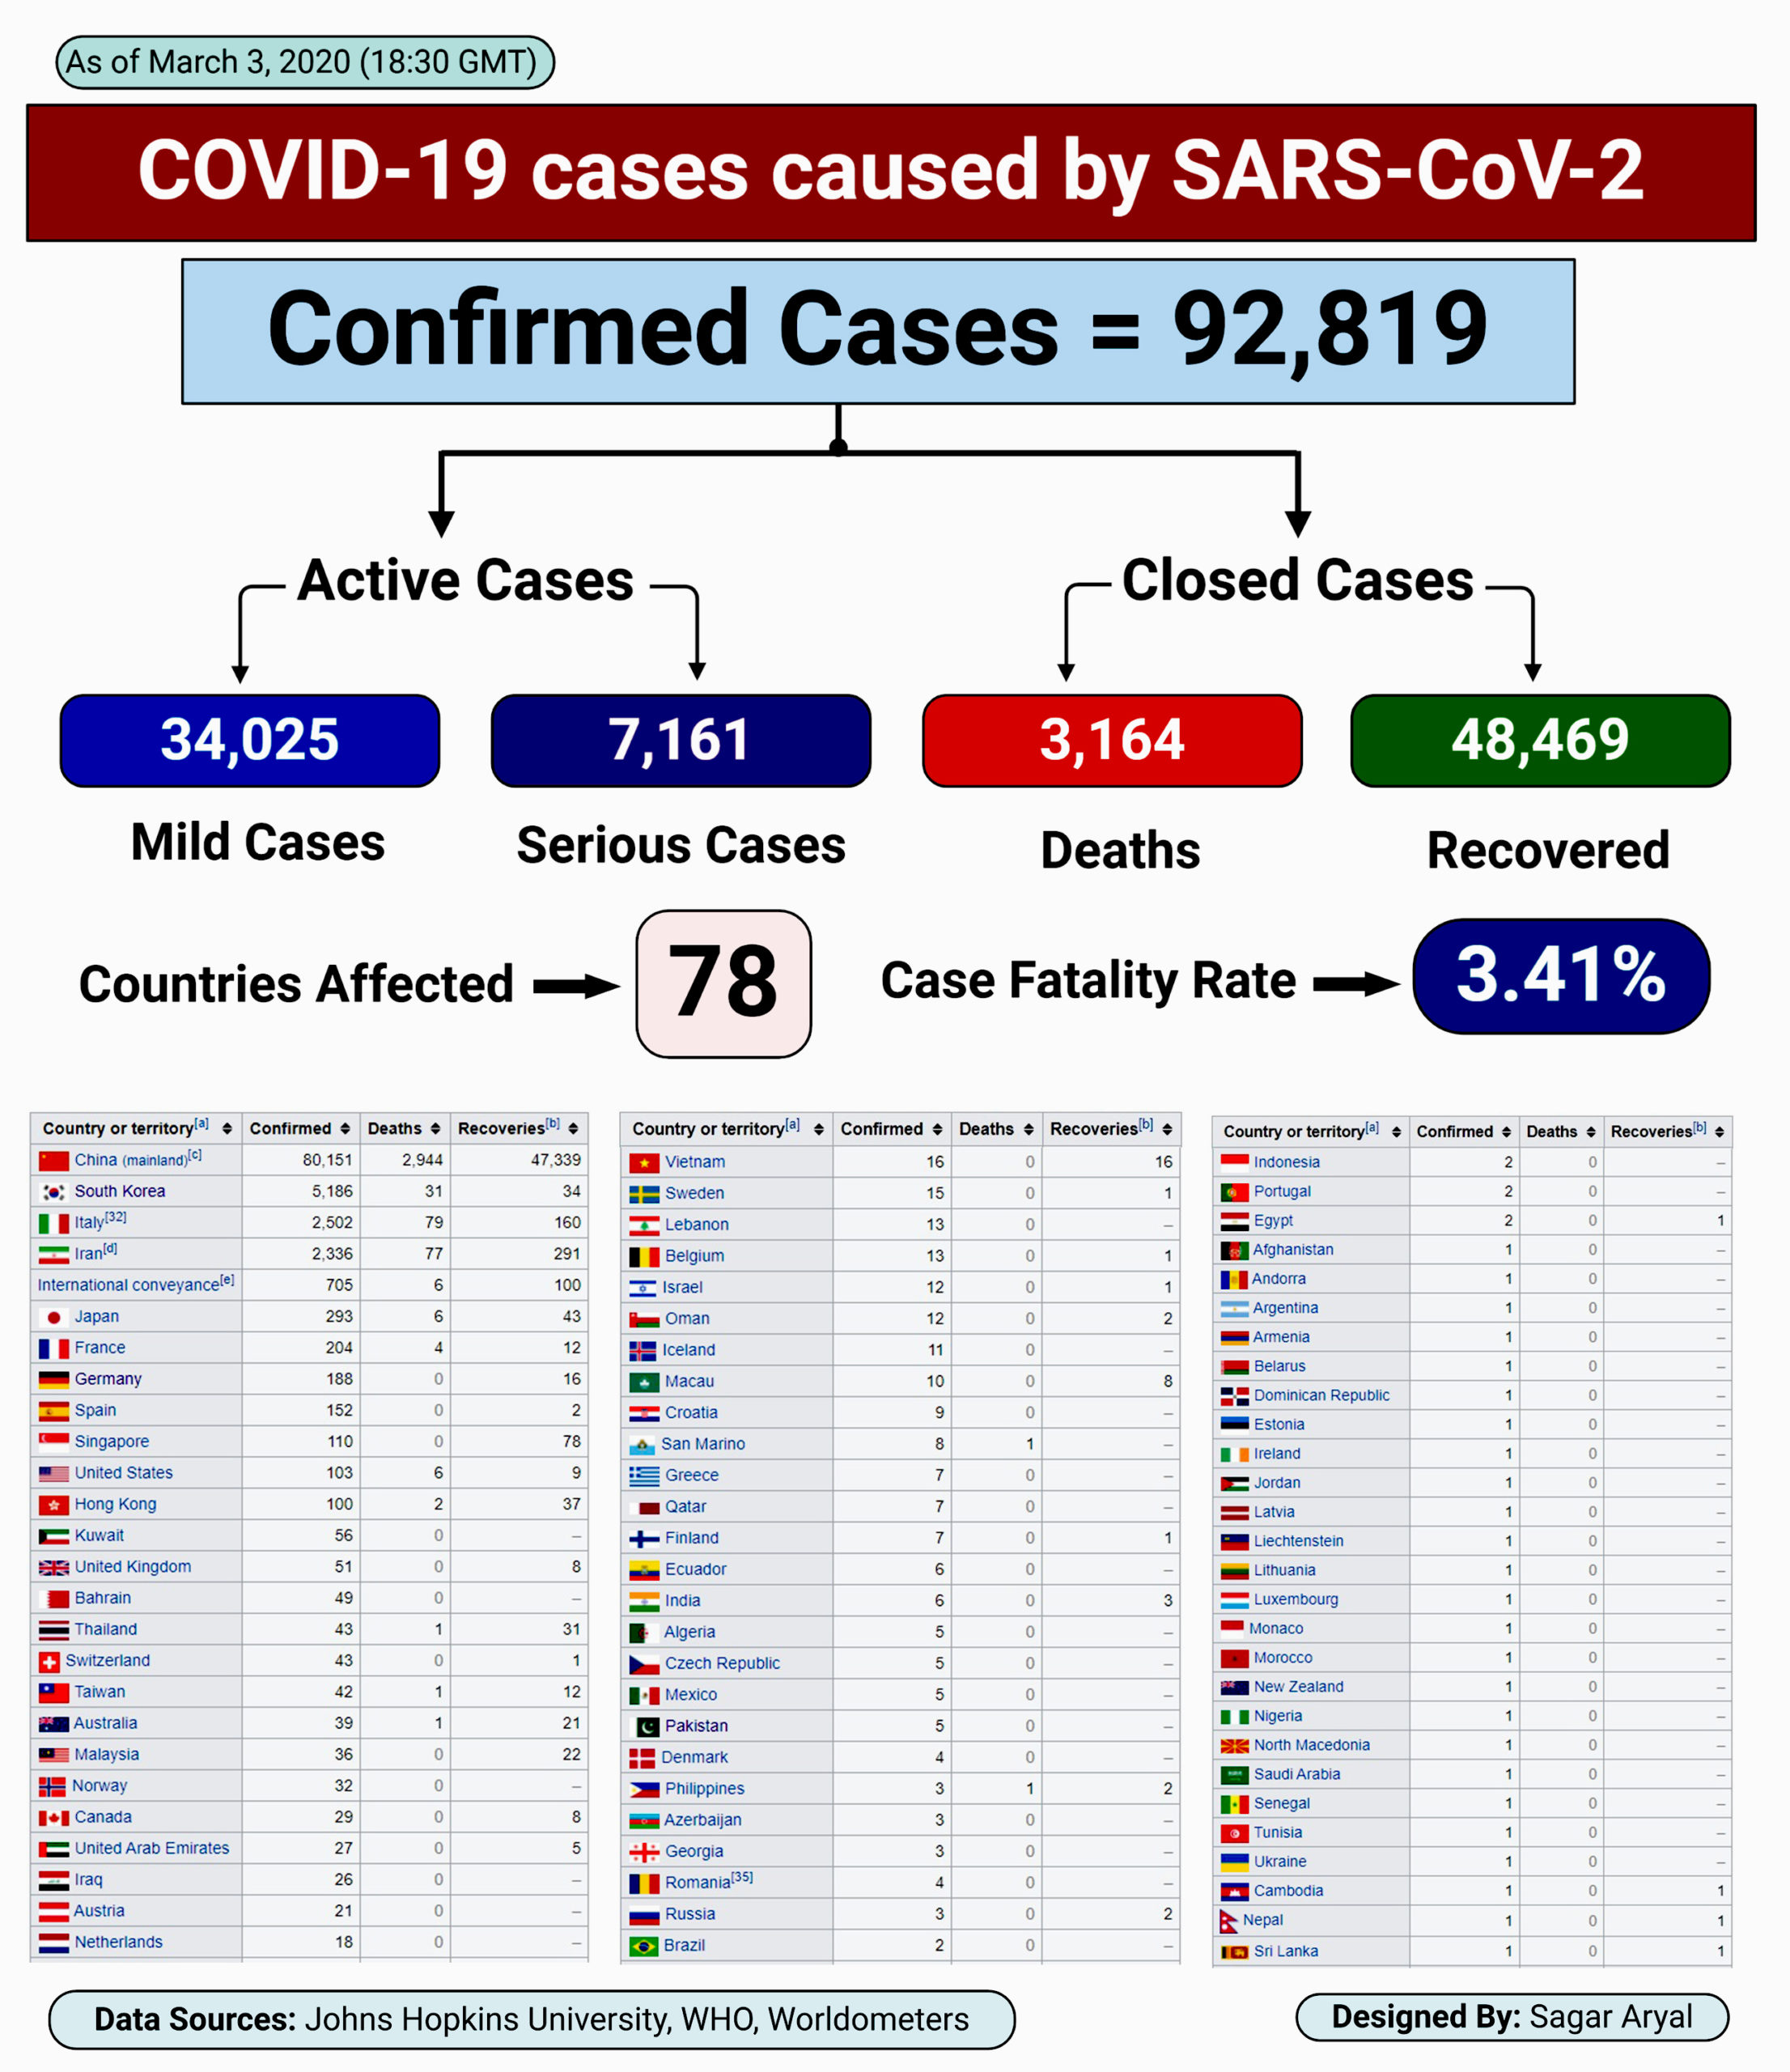 Epidemiology of COVID-19 caused by SARS-CoV-2 as of March 3, 2020